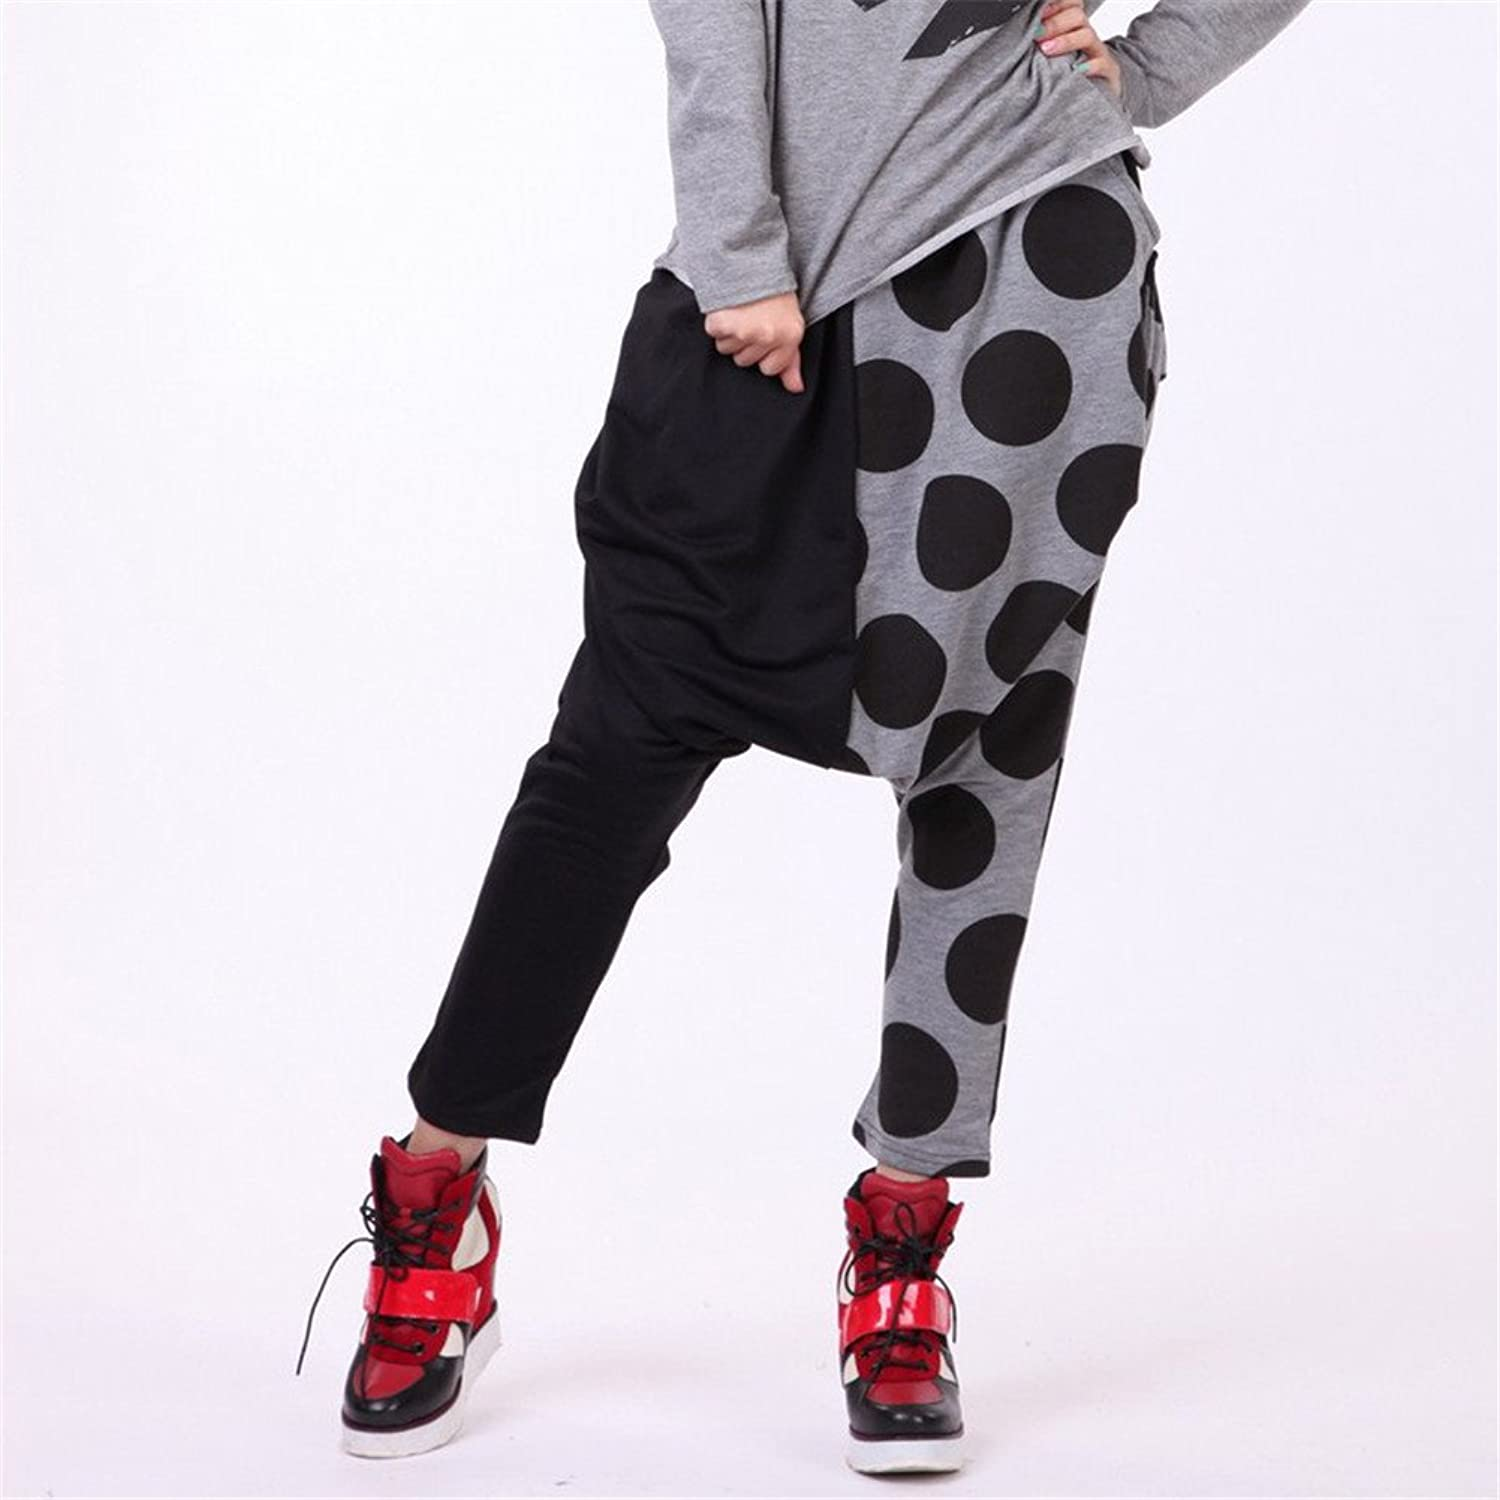 Unisex Baggy Hip-hop Harem Hippie Dots Stitching Pants Trouser Dance Pants